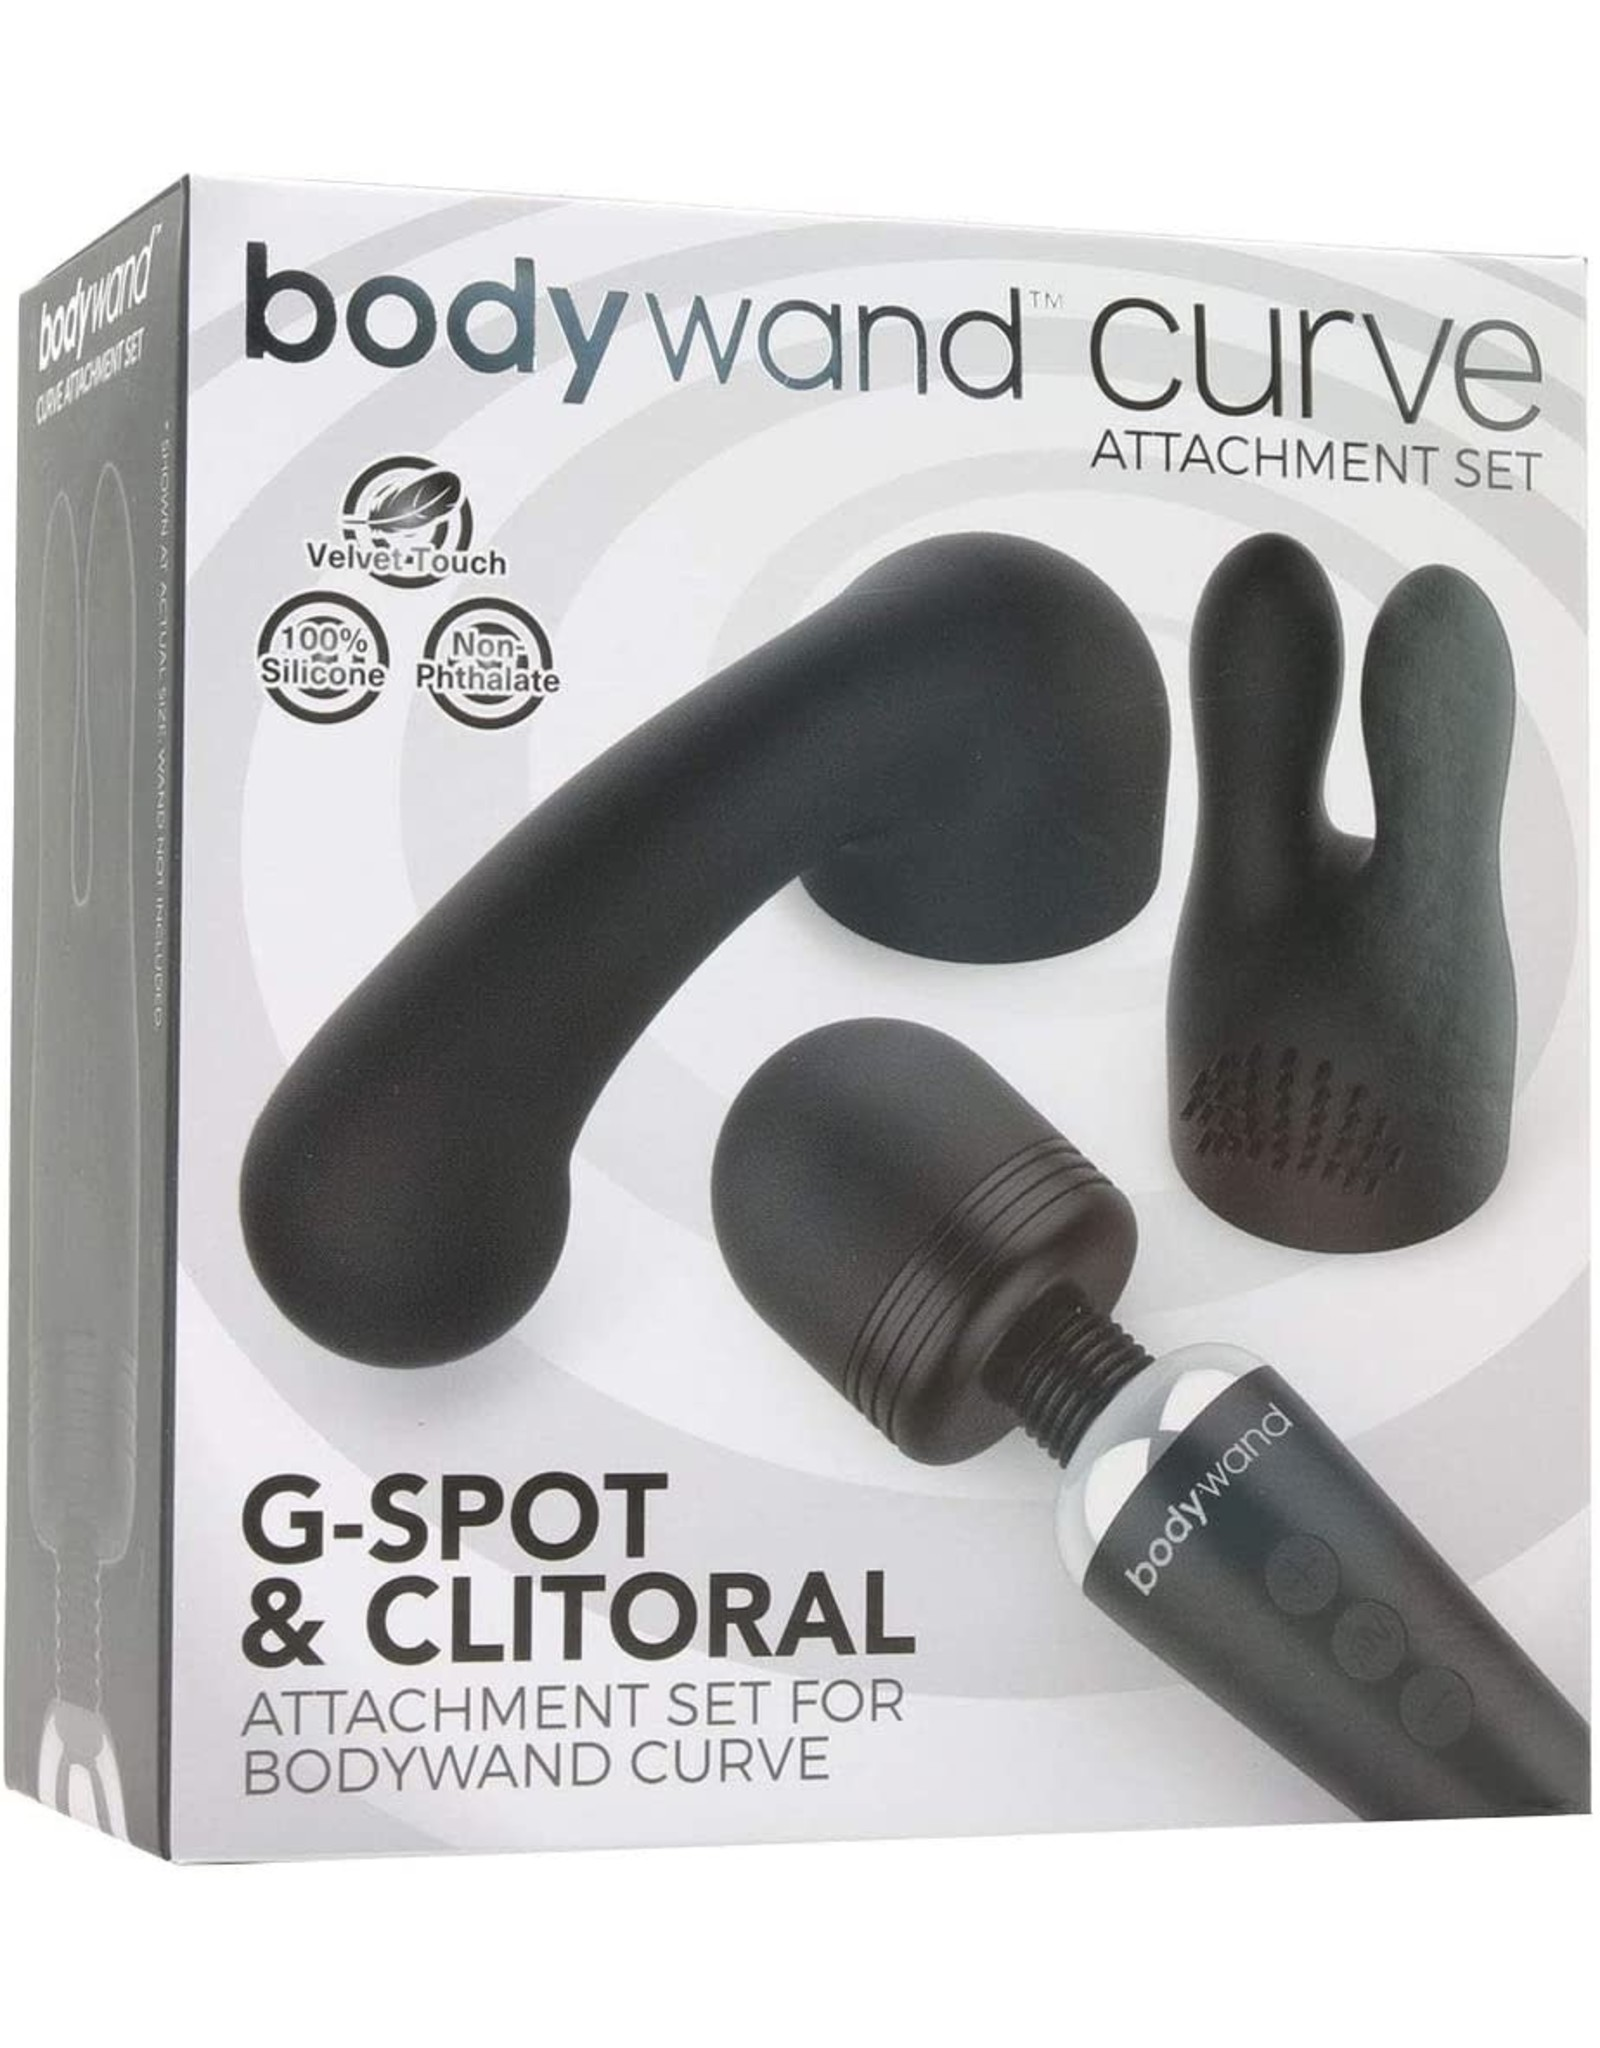 BODYWAND - CURVE ATTACHMENTS 2 PIECE